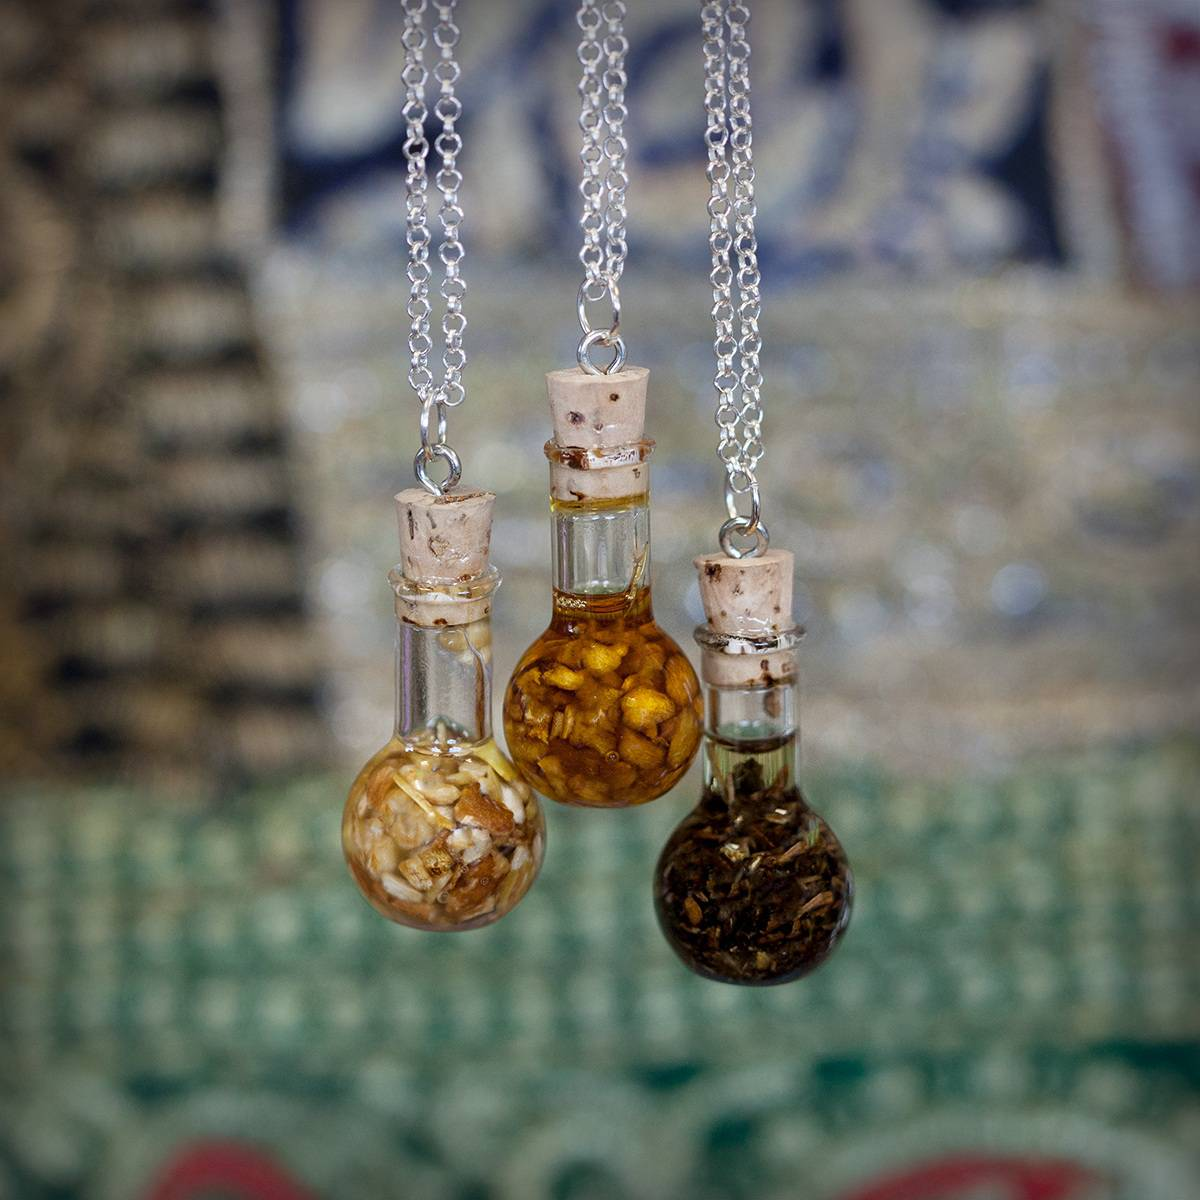 Aryuvedic Vial Pendants 3_8 Featured